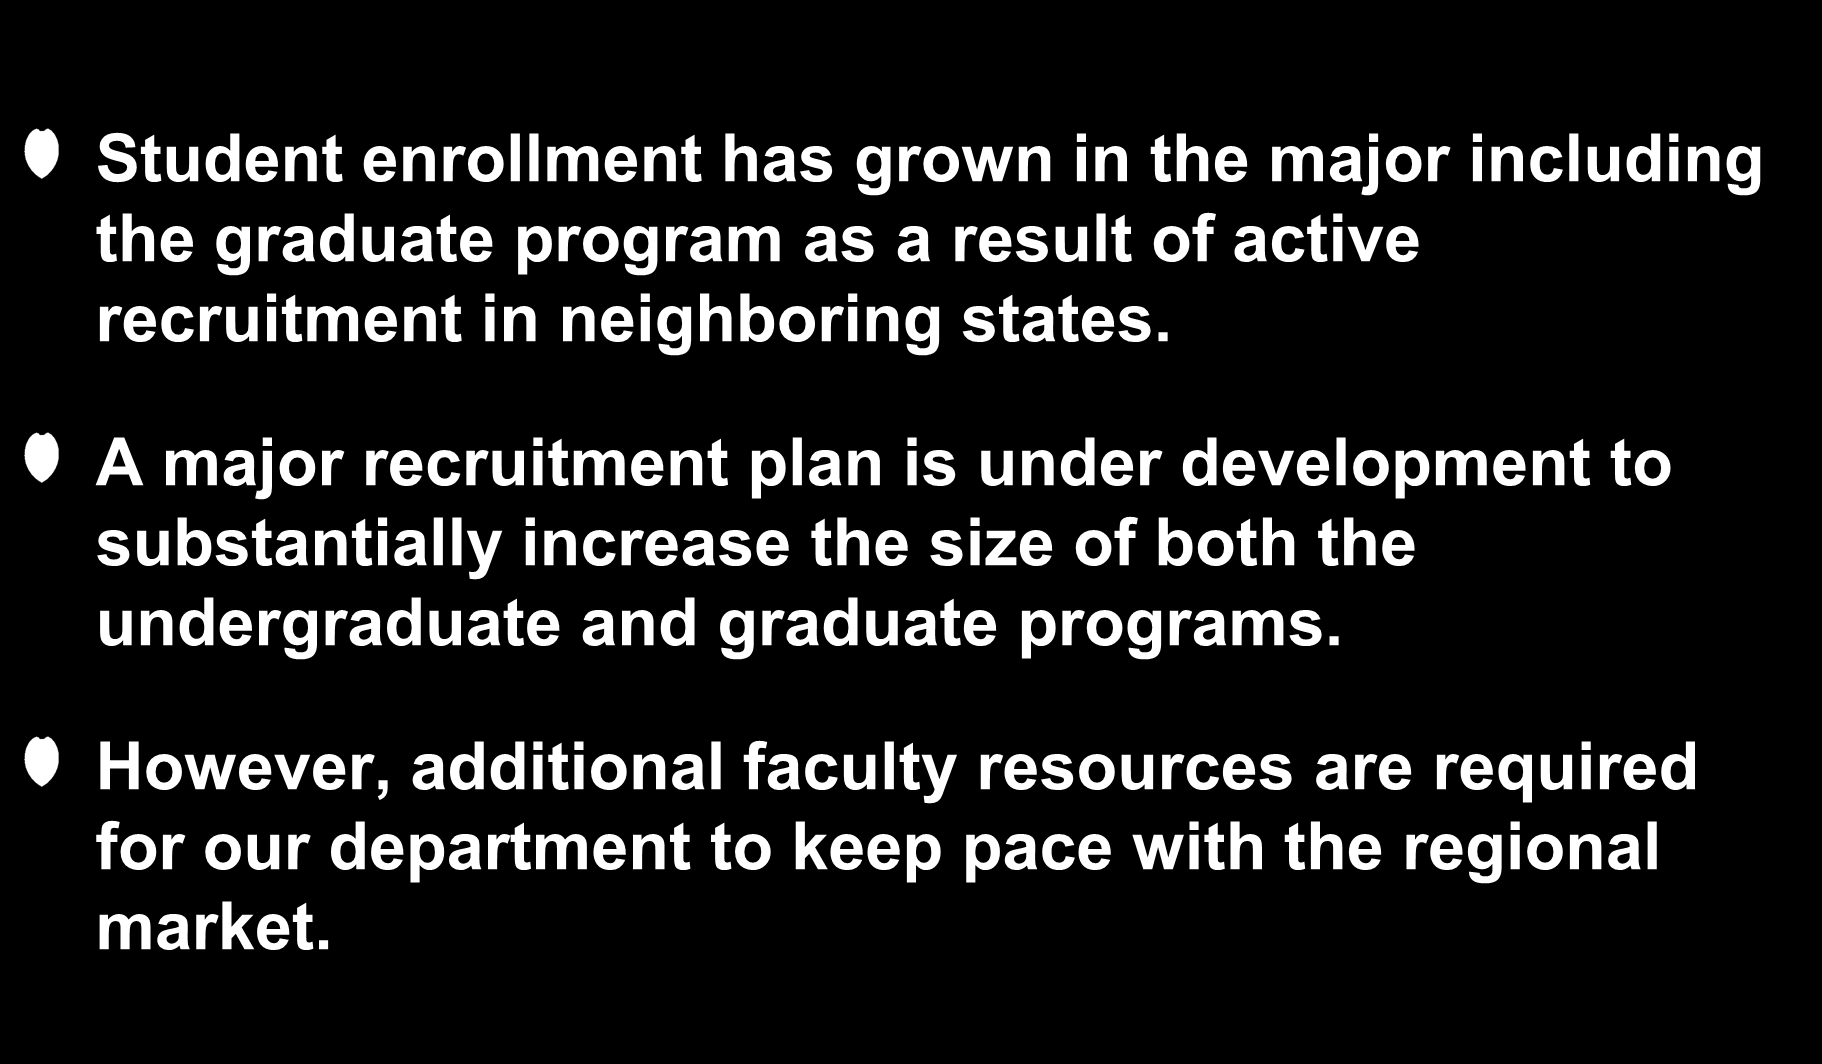 Criteria #10: Impact, Justification and Overall Essentiality Student enrollment has grown in the major including the graduate program as a result of active recruitment in neighboring states.